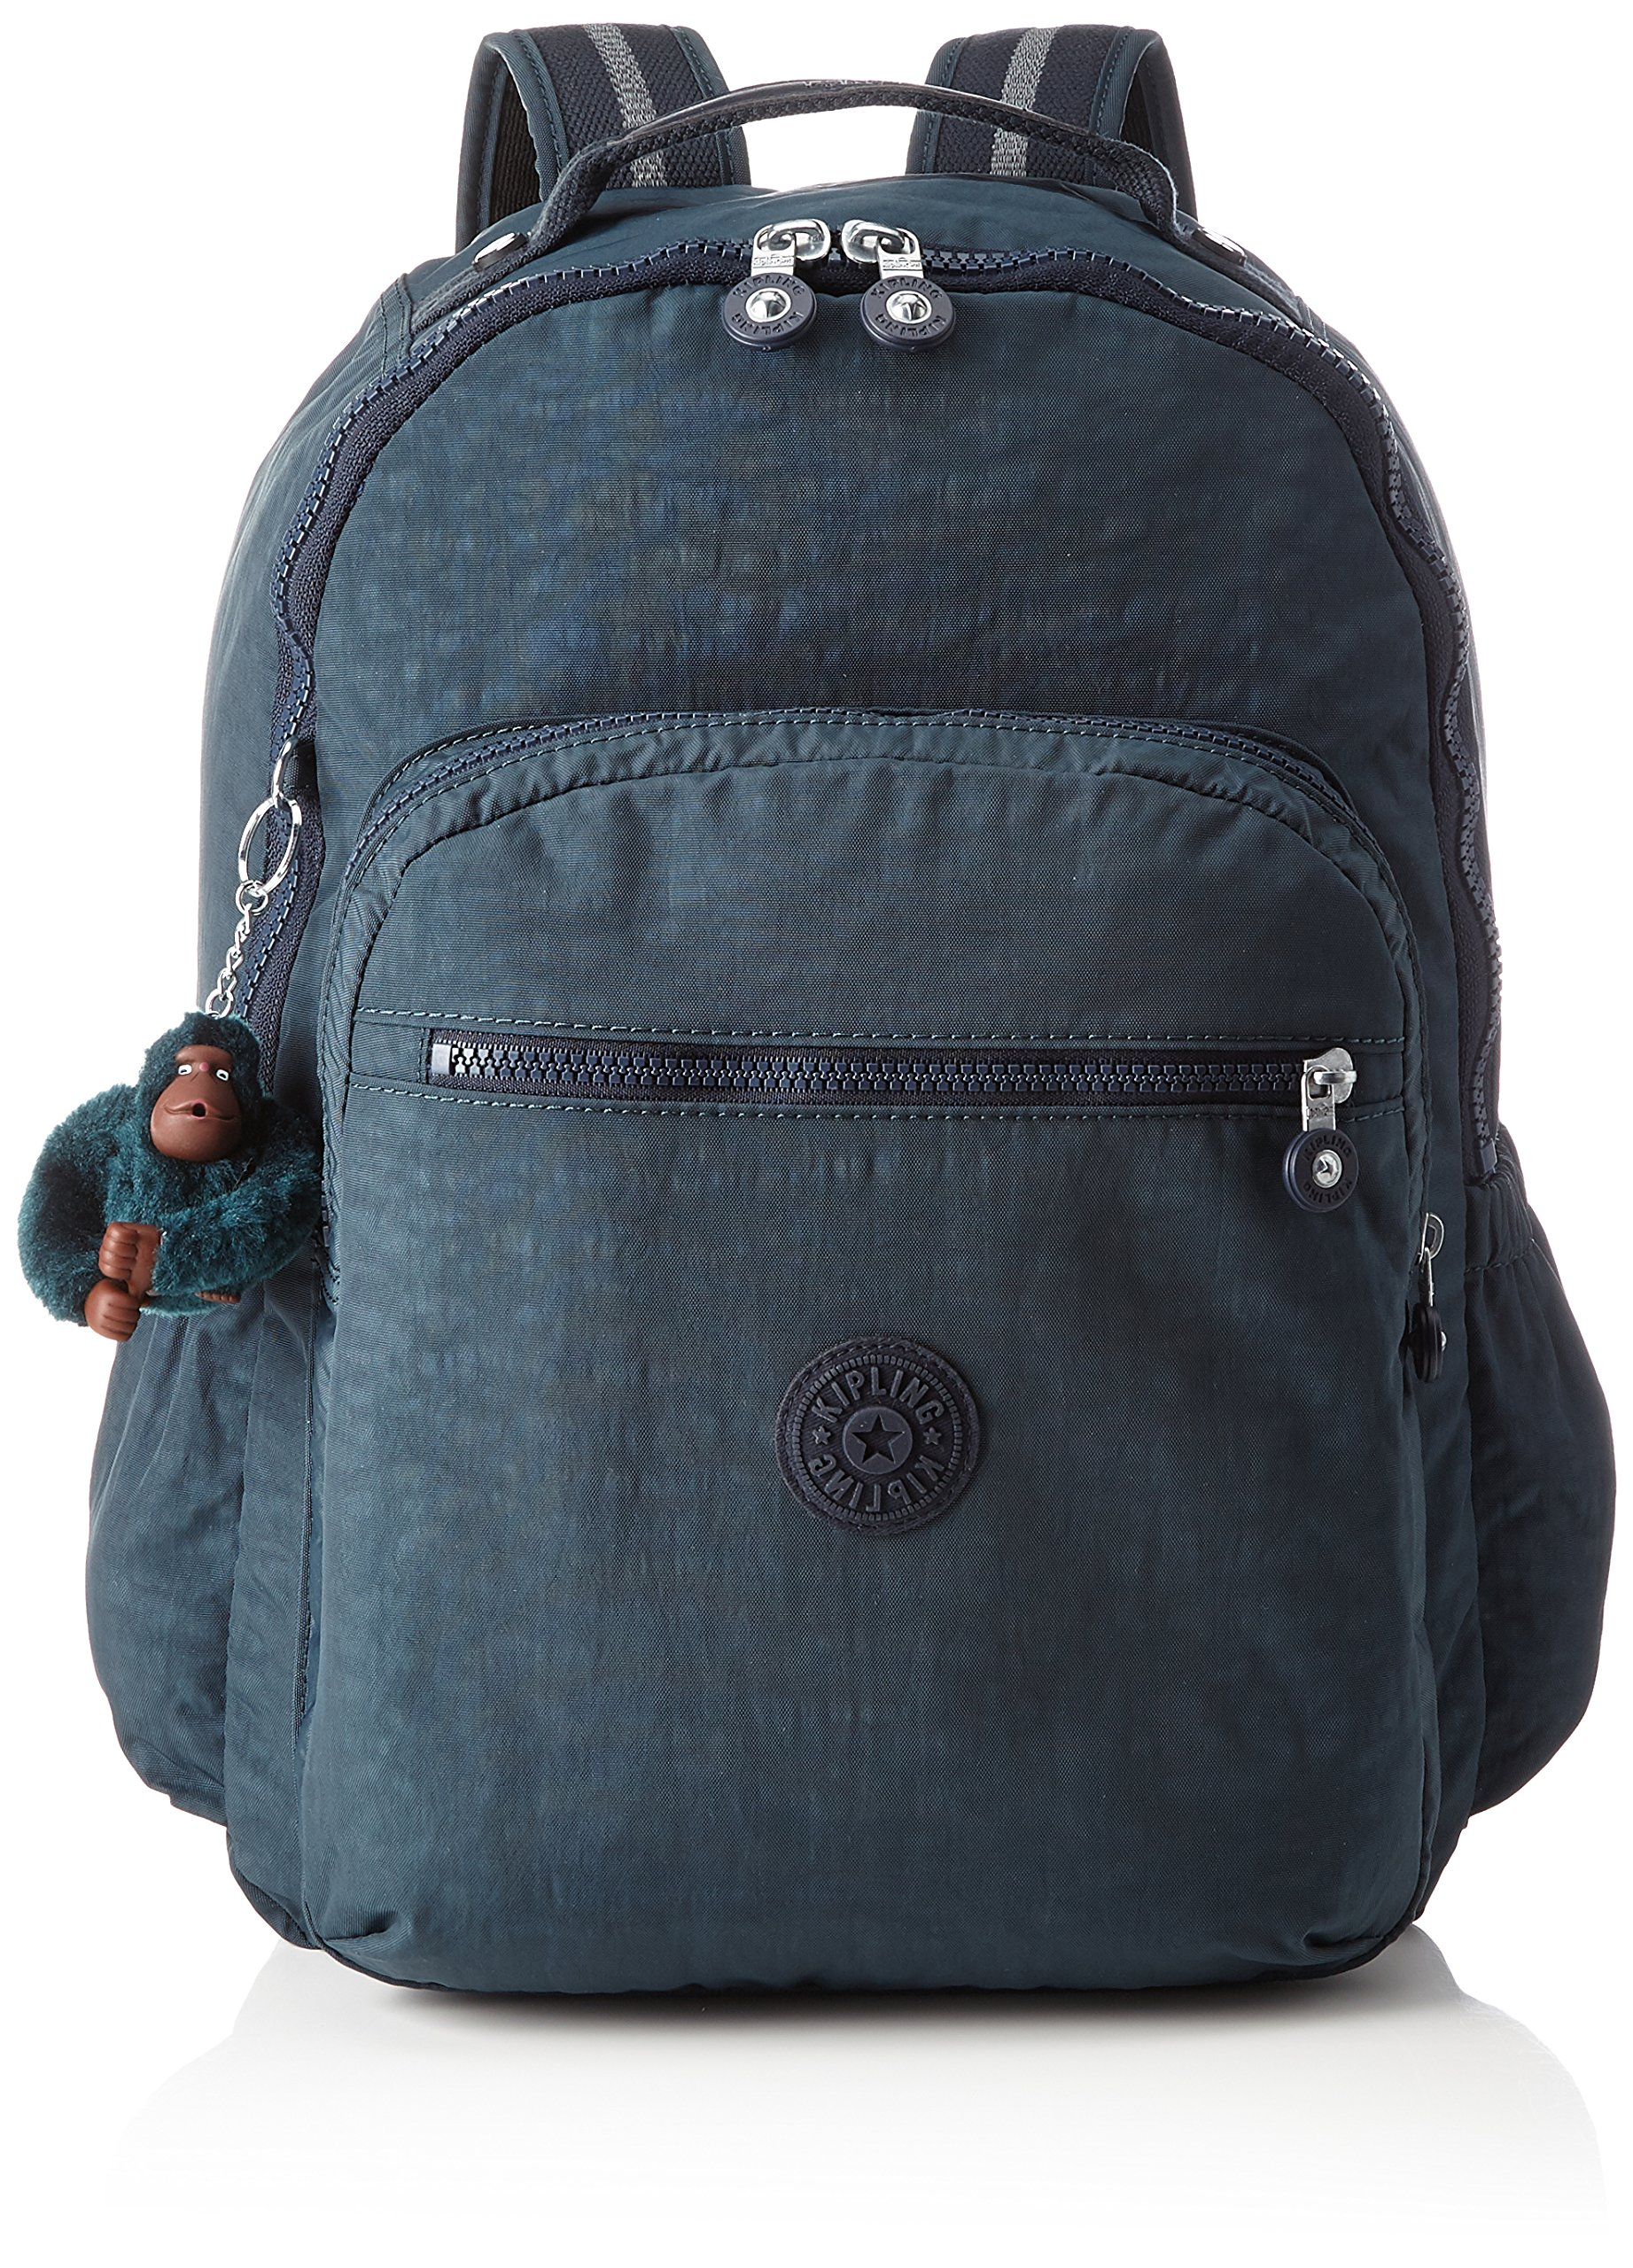 Kipling Seoul Up Large Backpack With Laptop Protection Pink Emerald Combo